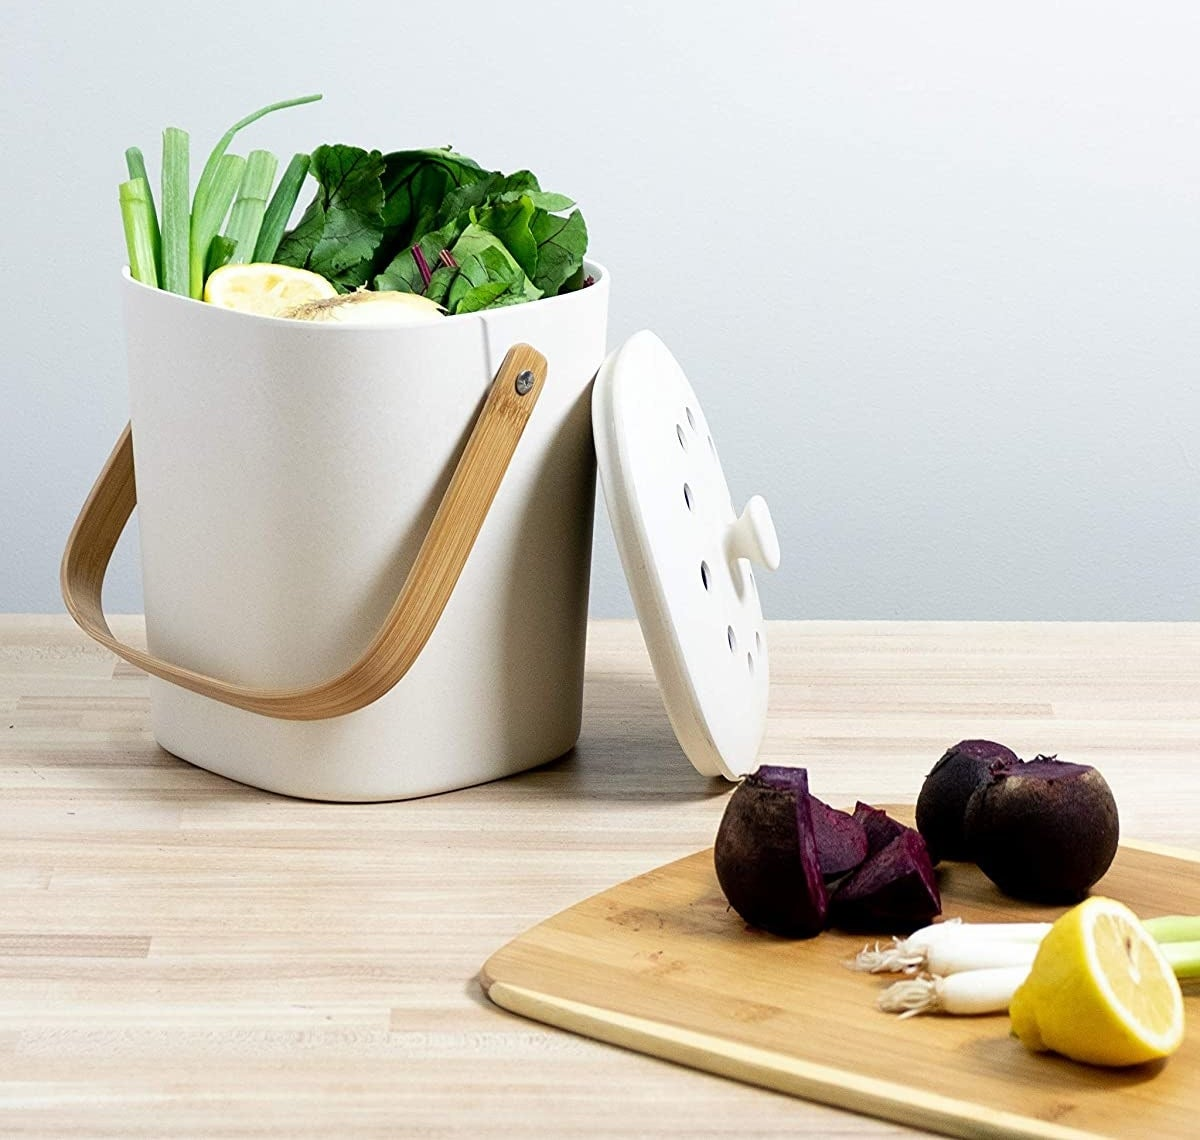 The white biodegradable composter which has a bamboo handle and vented lid